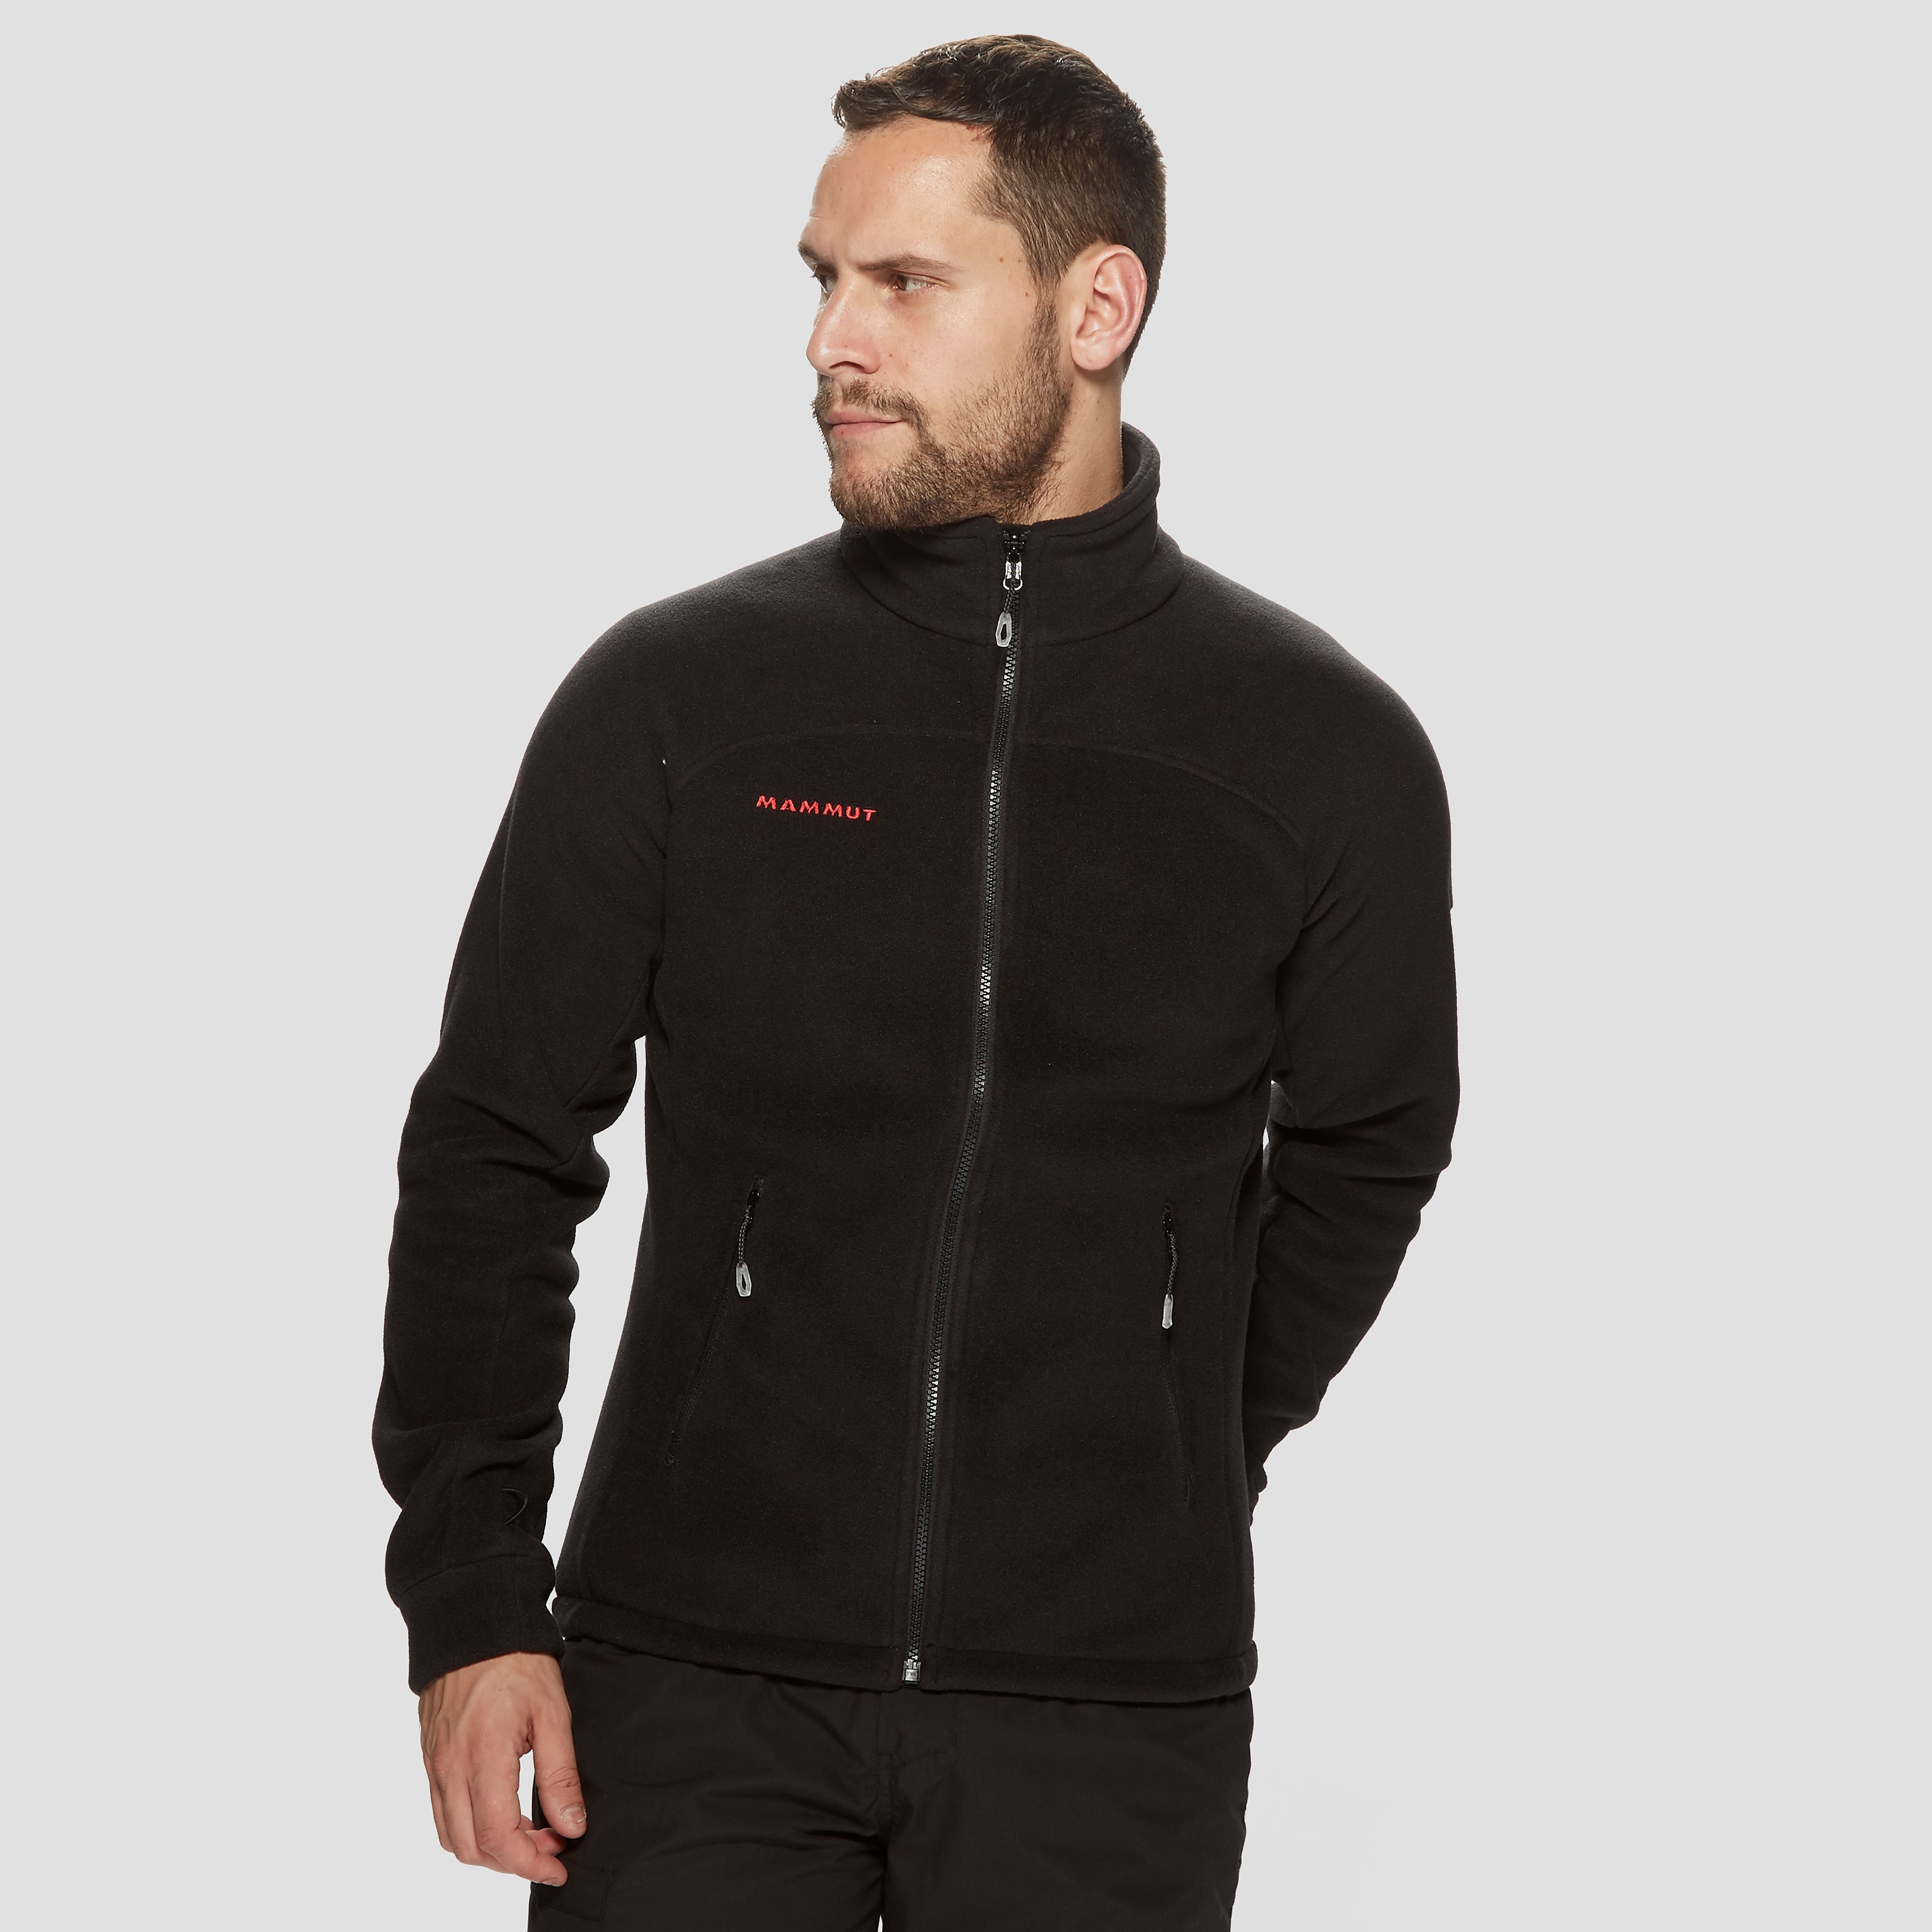 Mammut Innominata Advanced Men's Jacket